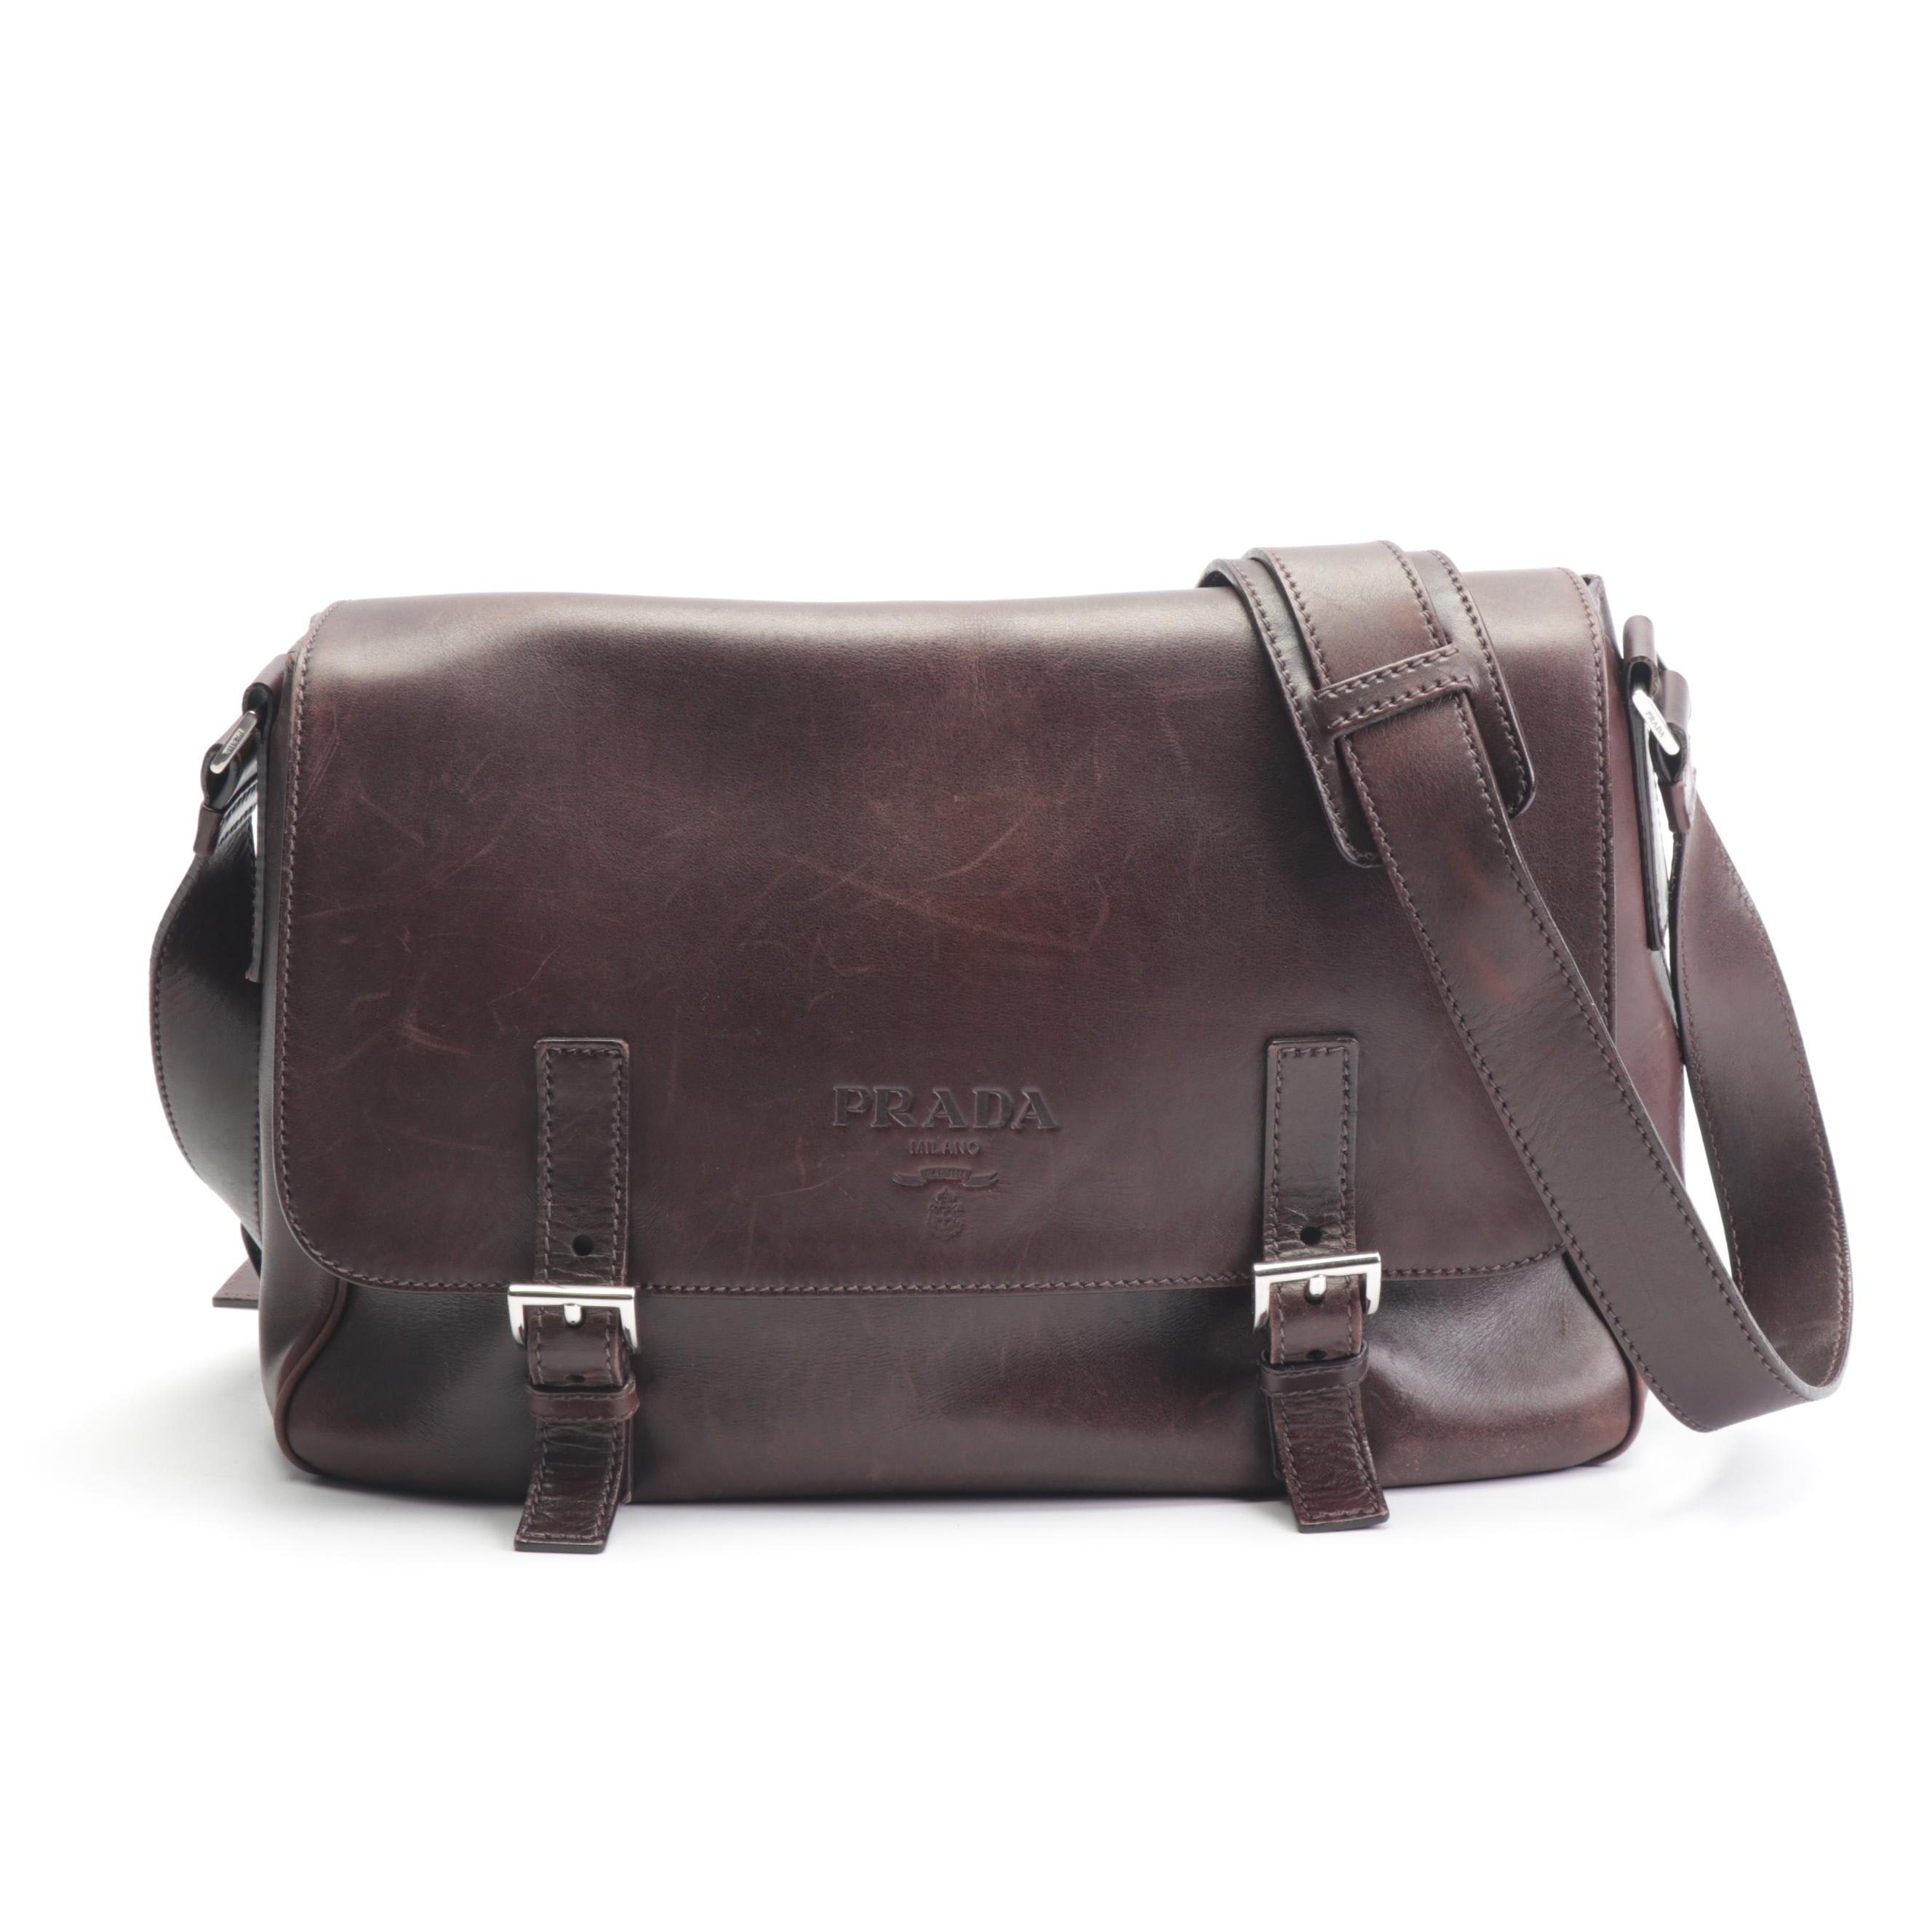 Prada Brown Leather Flap Front Crossbody Bag, Made in Italy